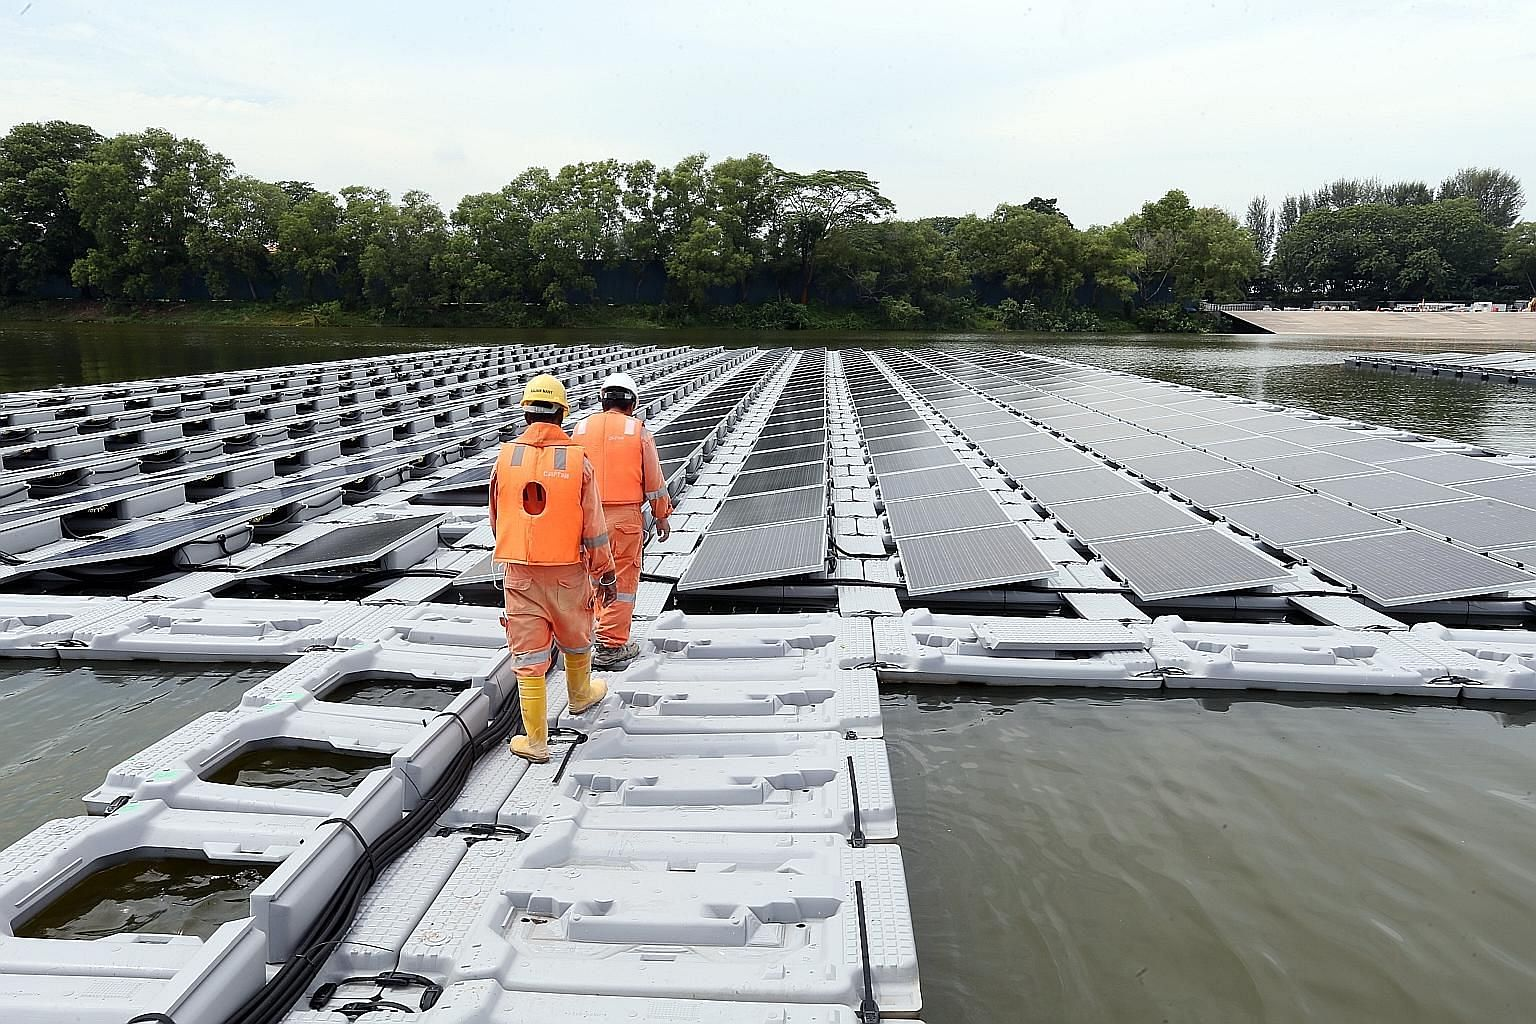 The floating solar photovoltaic cell test bed is an amalgam of 10 different systems. Each system, consisting of solar cells that can convert sunlight directly into energy, has a peak capacity of 100 kilowatts, enough to power 30 four-room HDB flats f